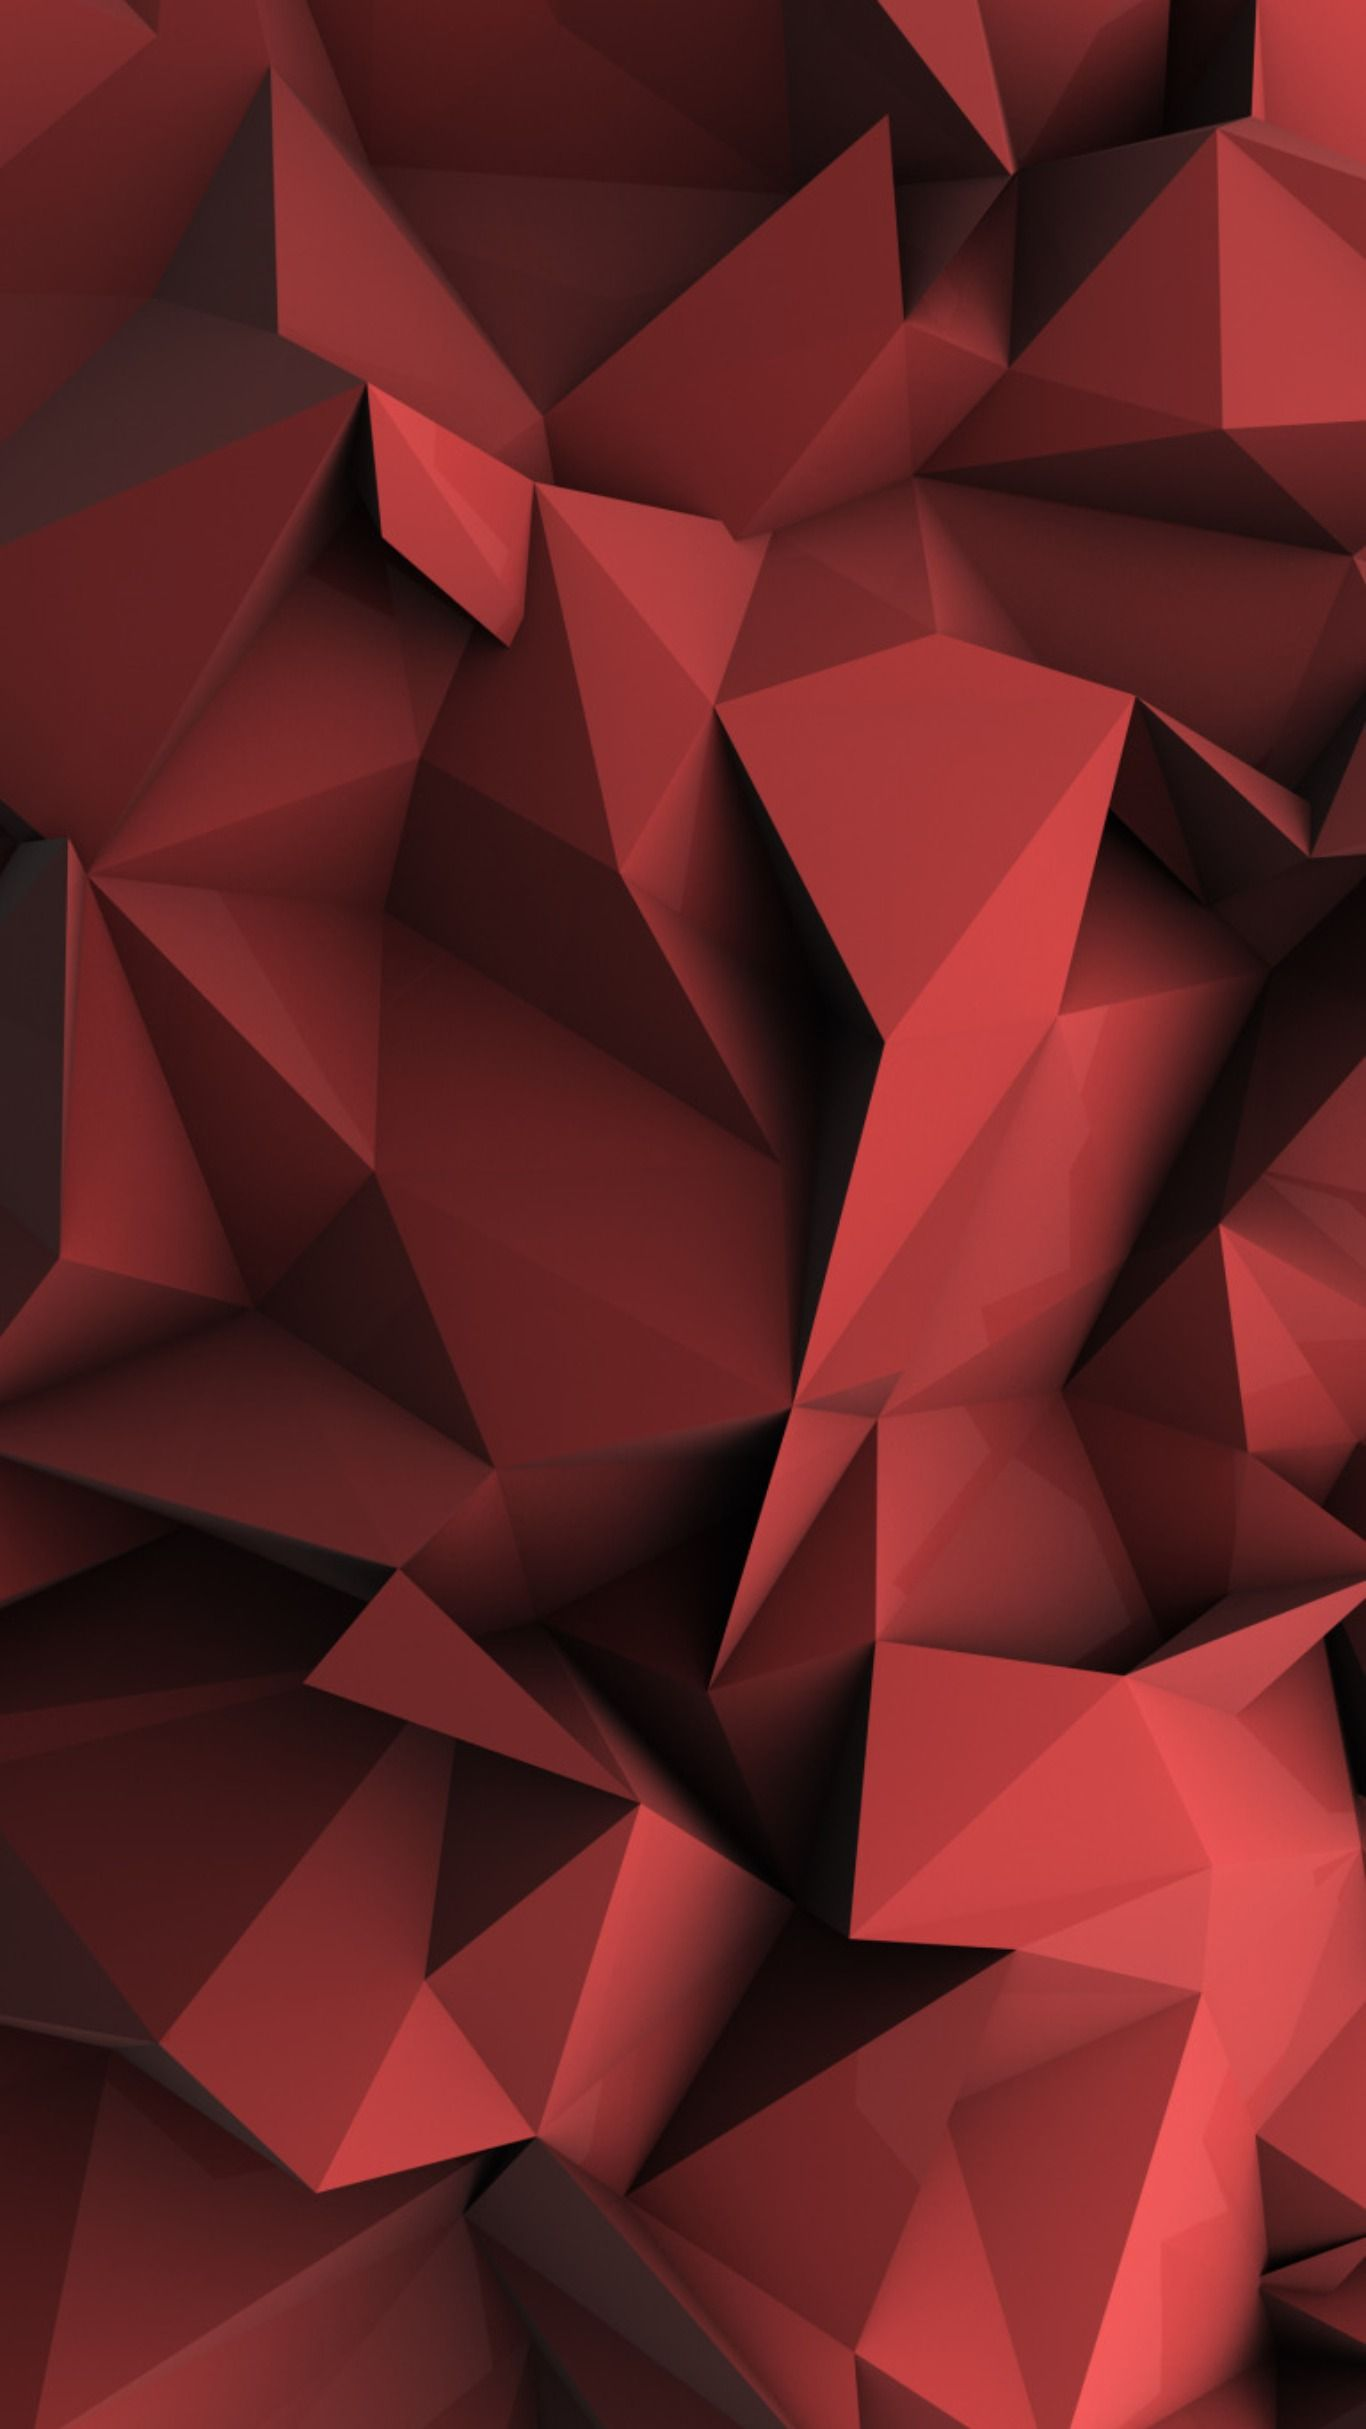 Geometry Ultrahd Red Black Background Design Abstract 4k Hd Phone Wallpaper Geometric Mi Red And Black Background Black Background Design Android Wallpaper Red